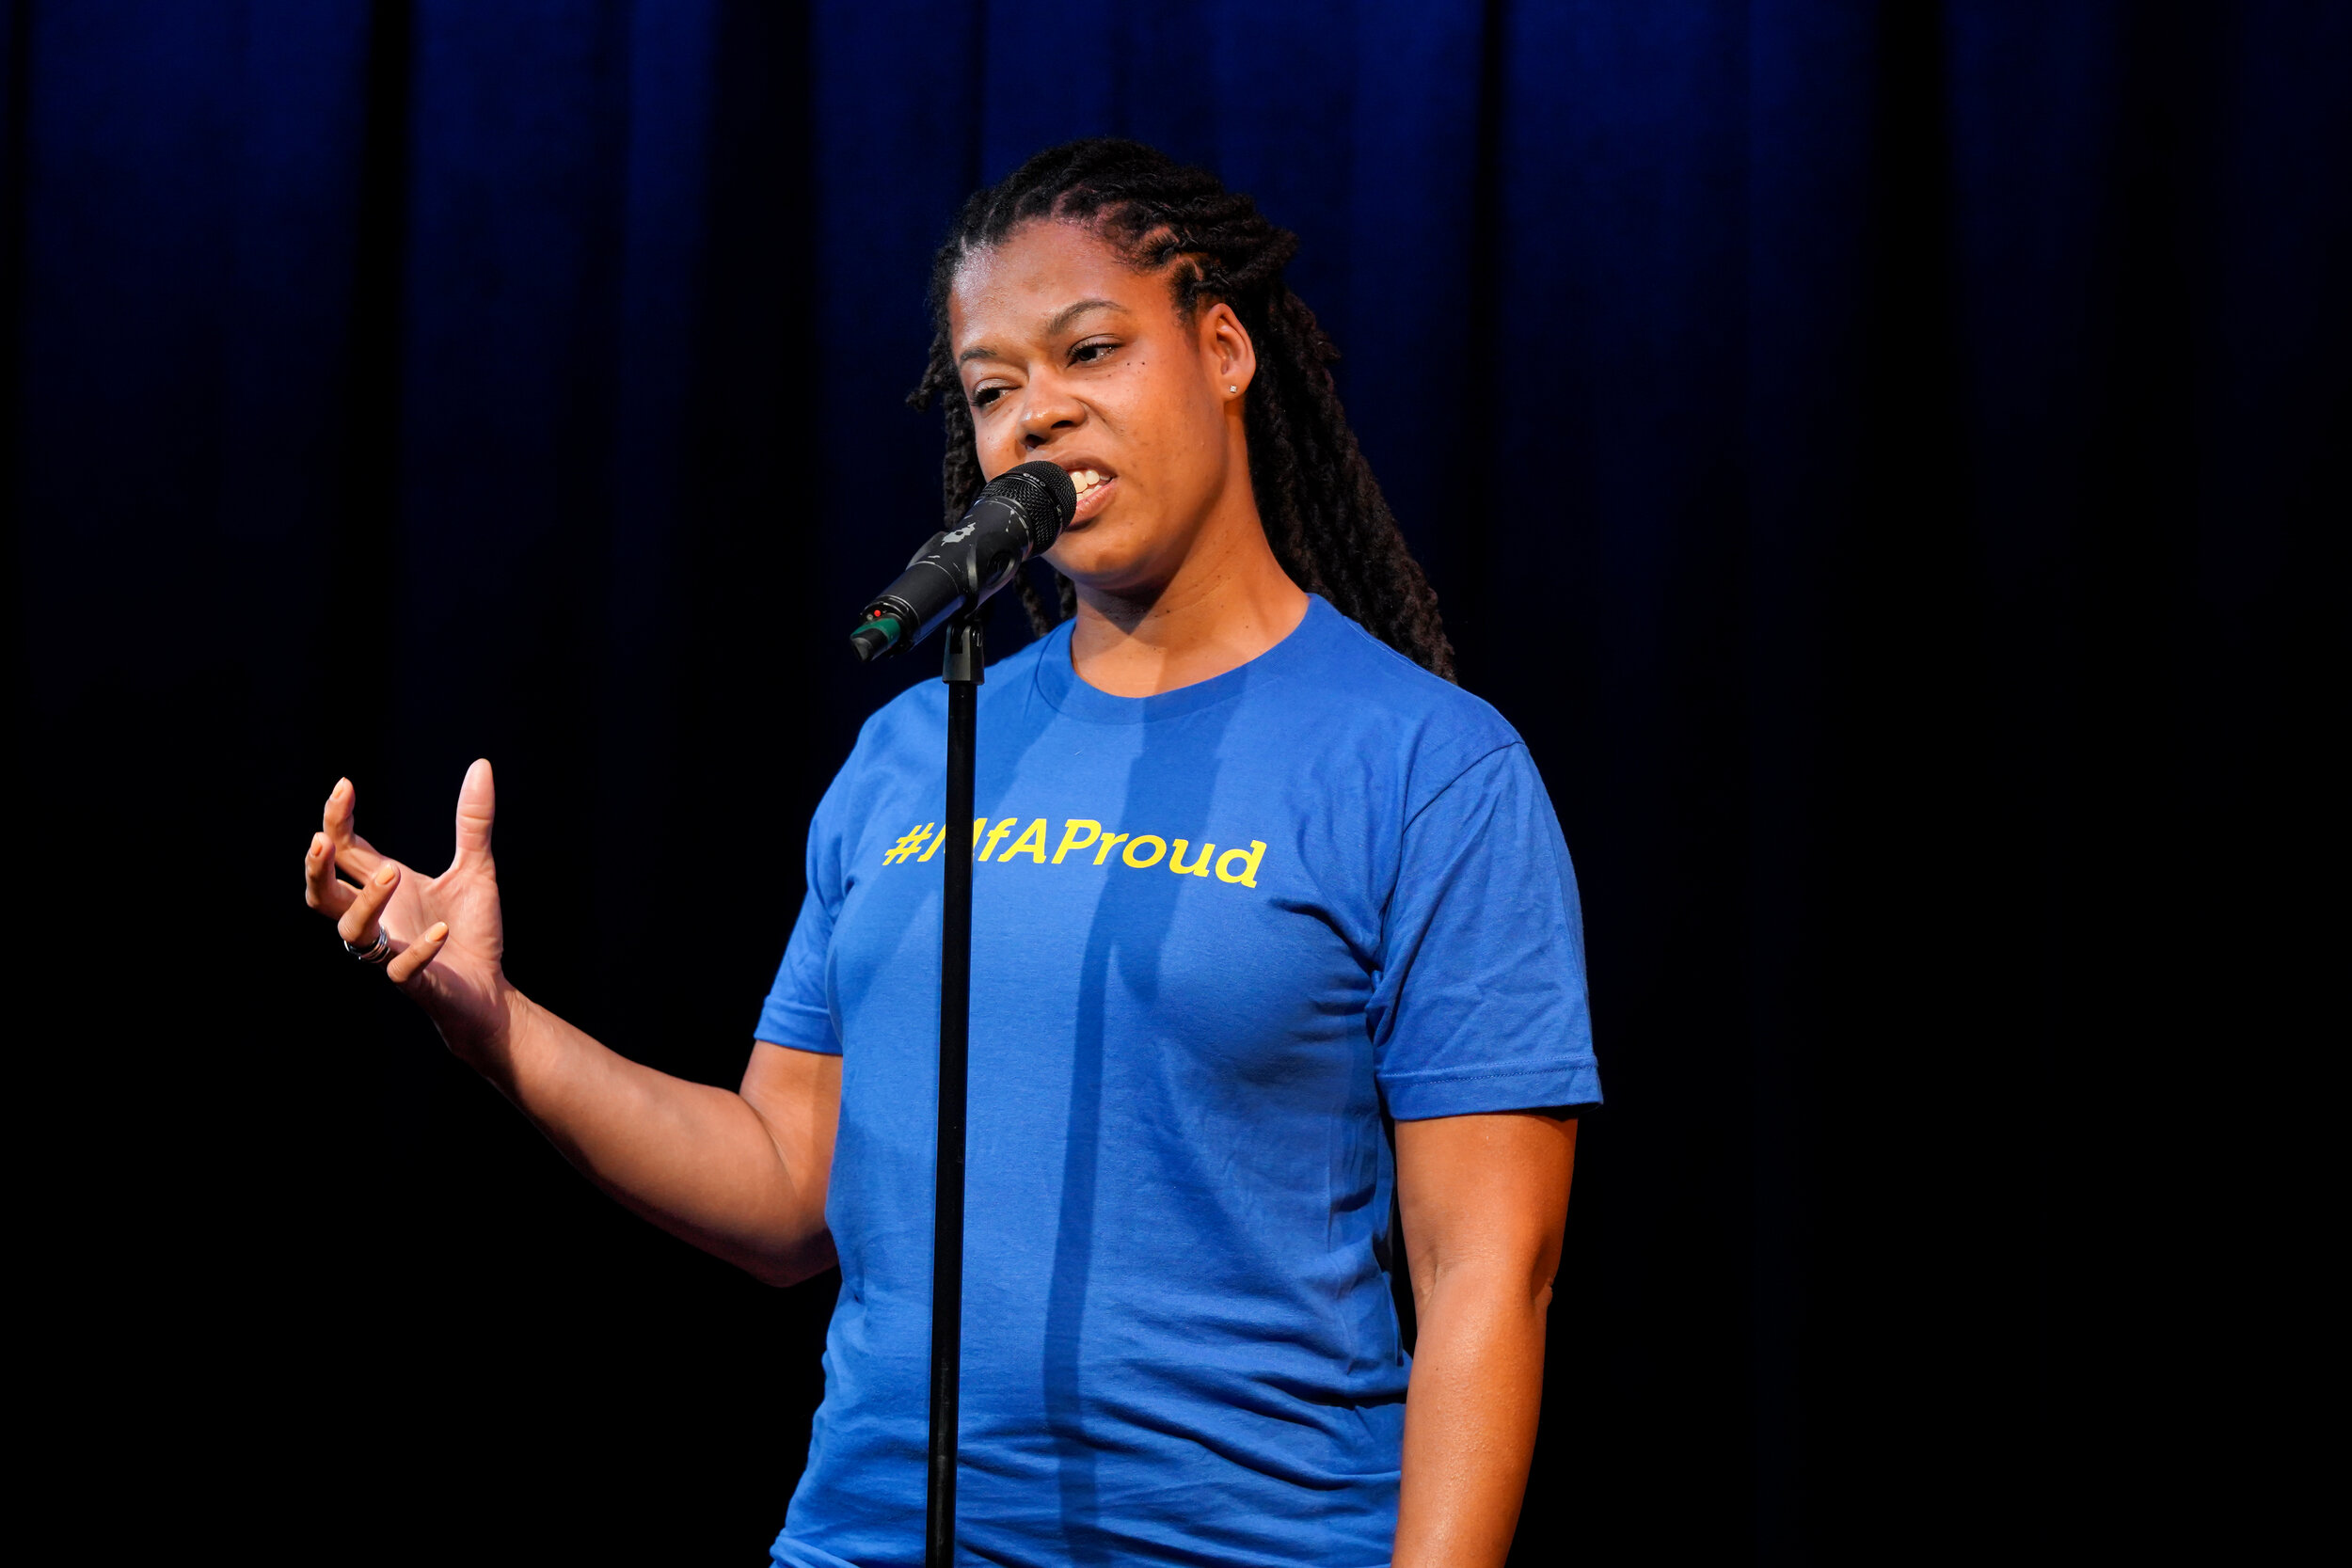 Aida Rosenbaum shares her story with the Story Collider audience at a show presented in partnership with Math for America at Caveat in New York City in May 2019. Photo by Zhen Qin.